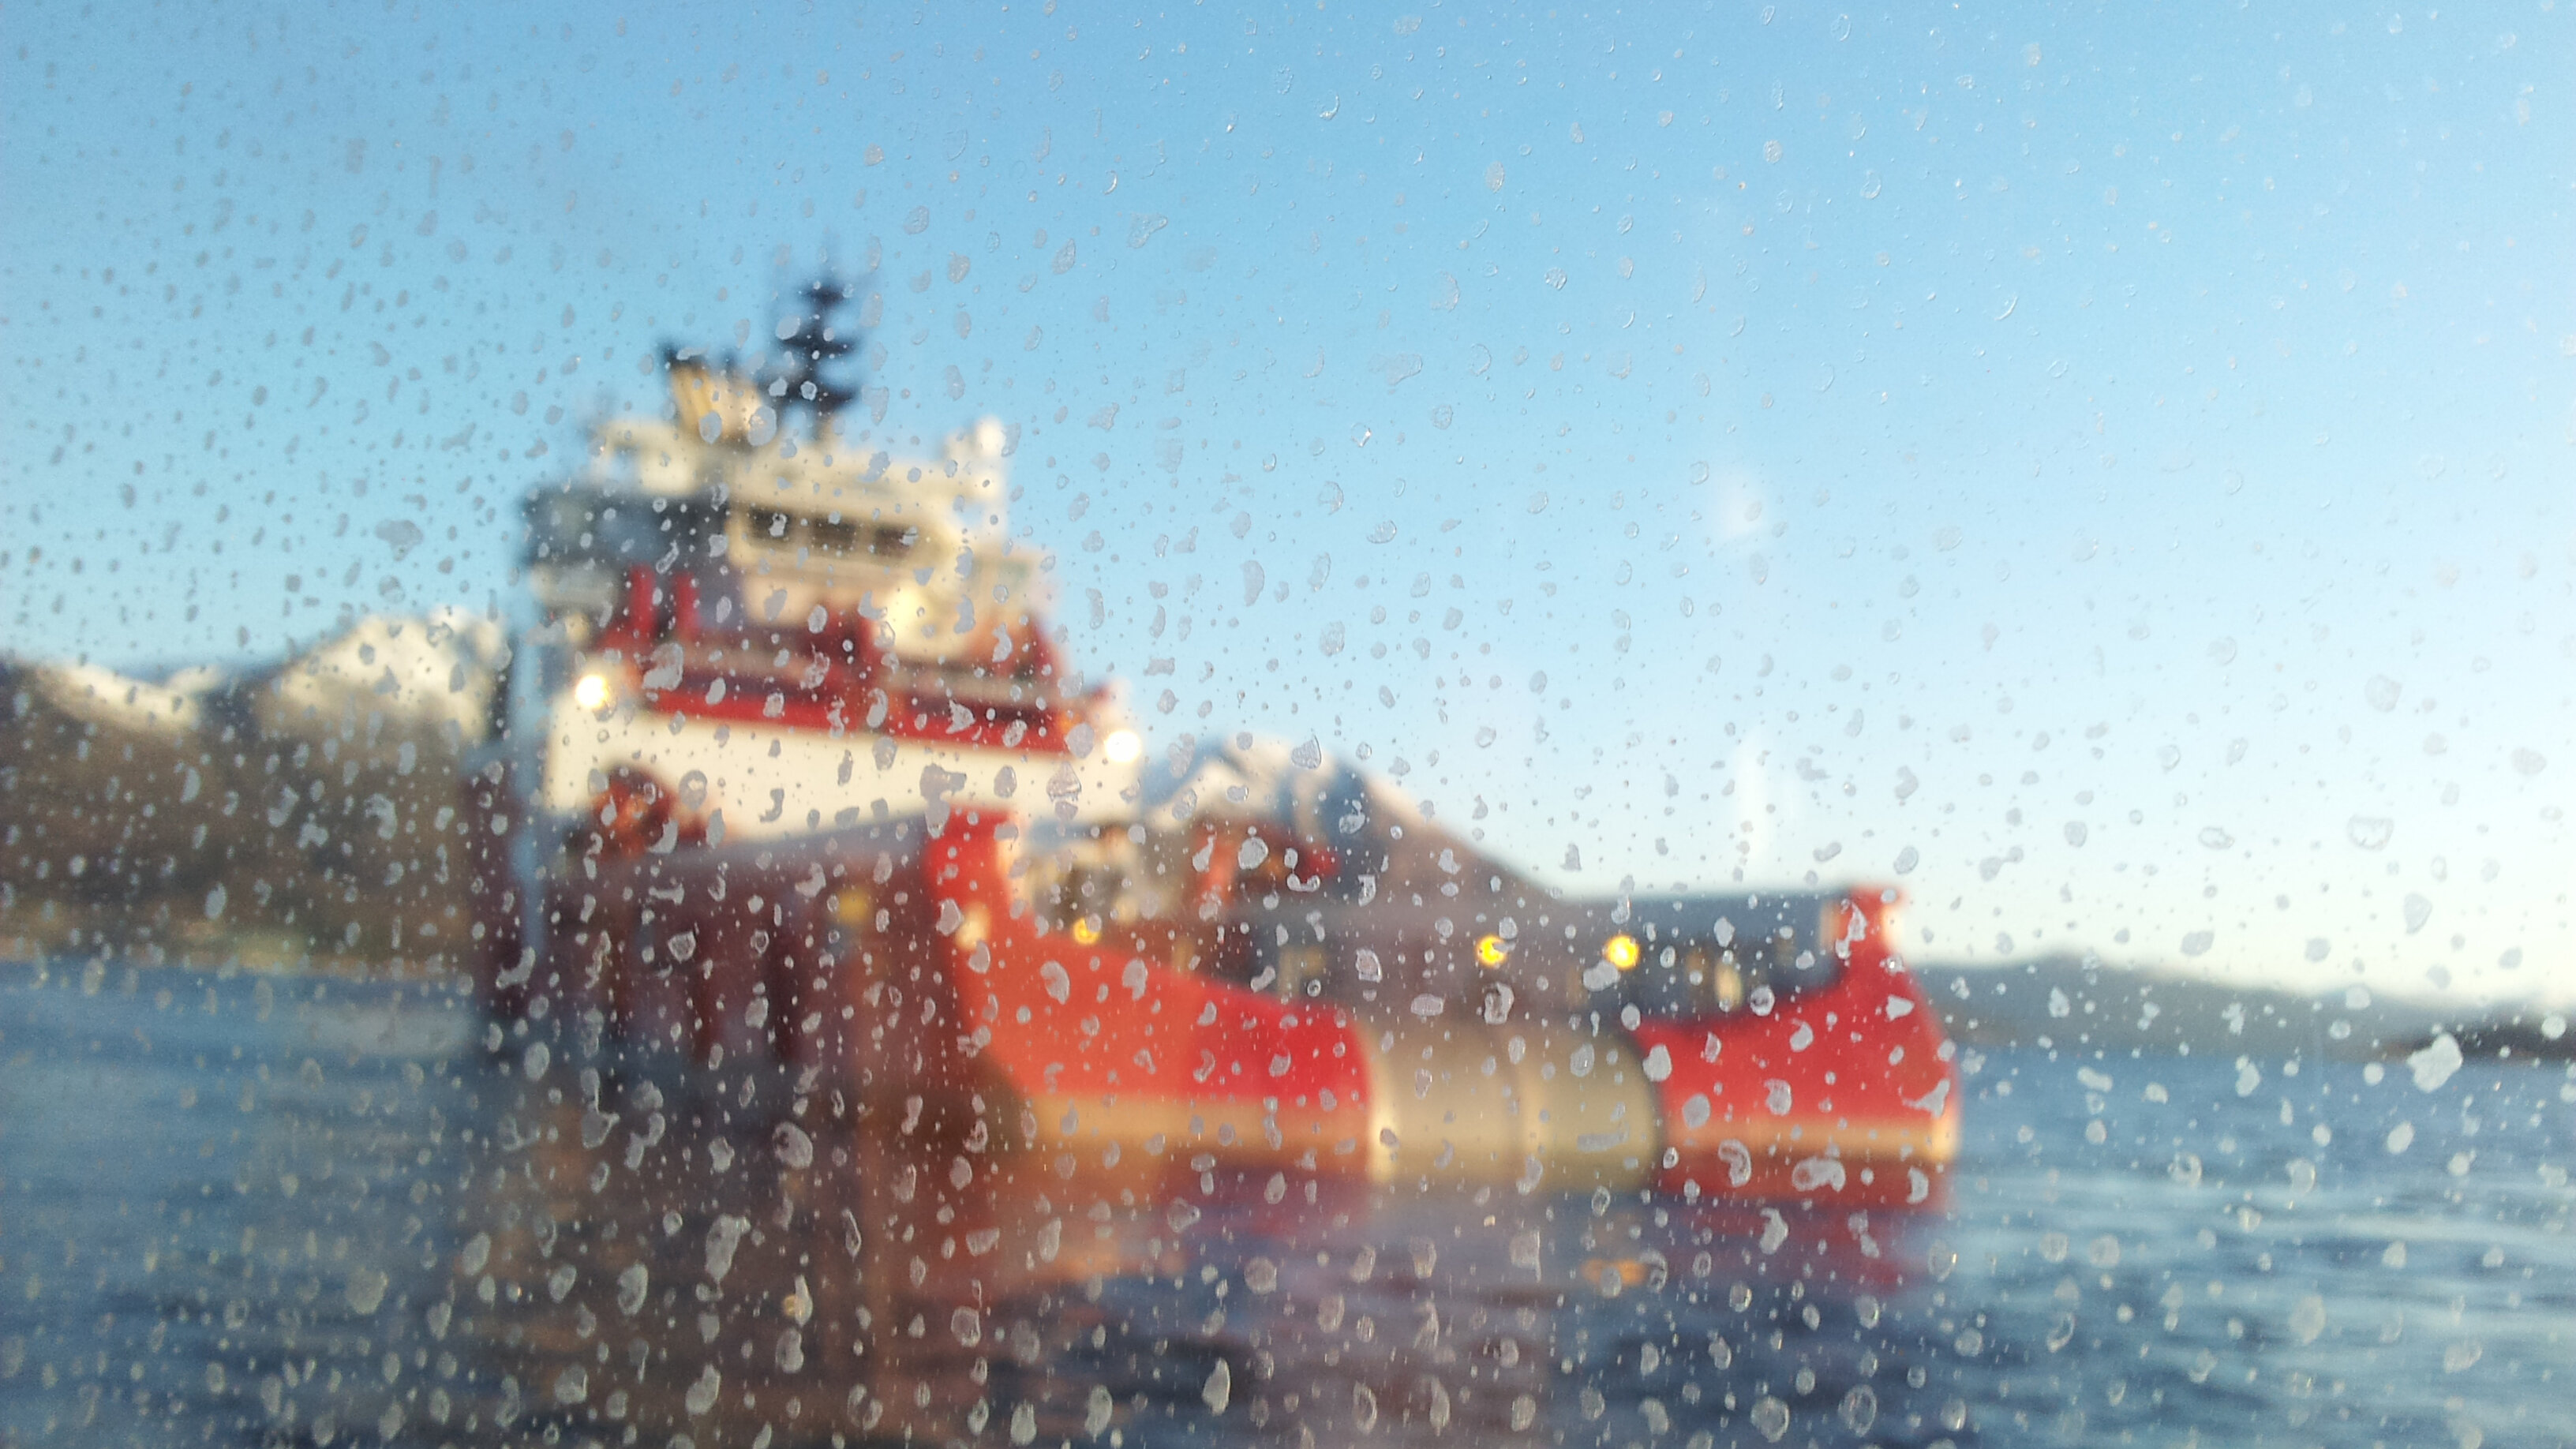 View of ship through wet window